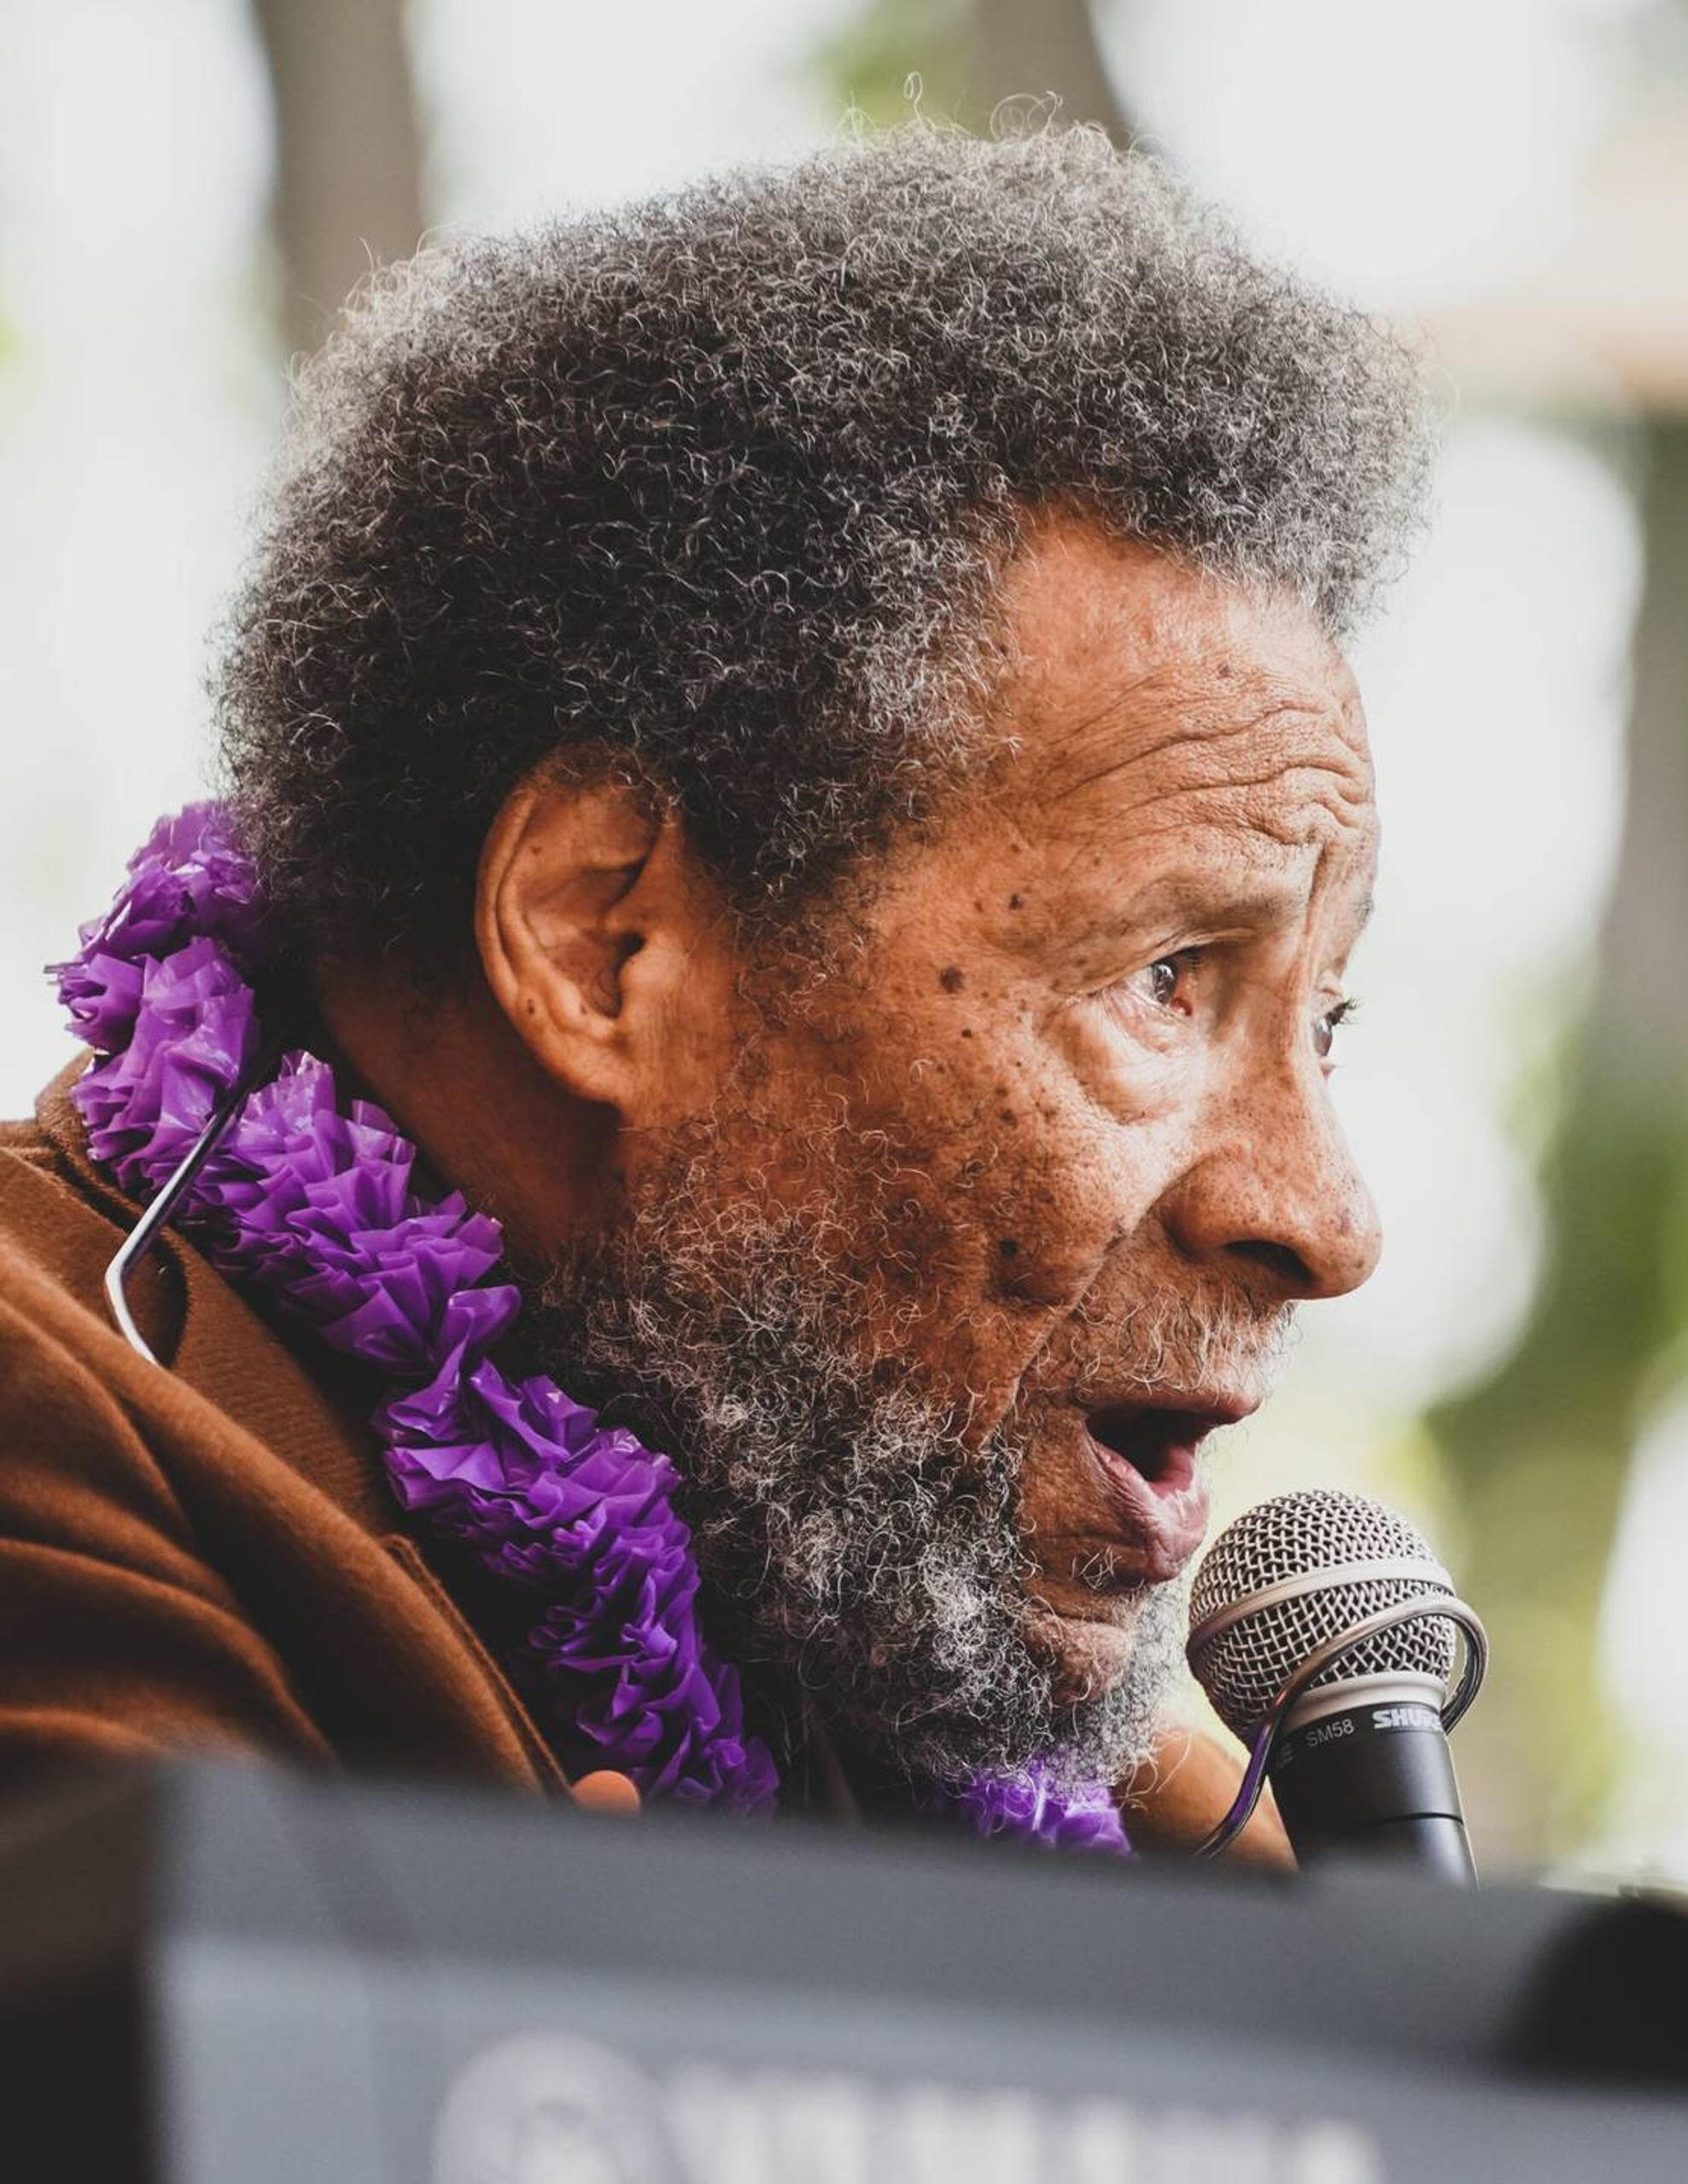 Photo of an older man sitting at a keyboard while wearing a purple lei and singing into a microphone. Life, elders, Rewire, PBS, our future